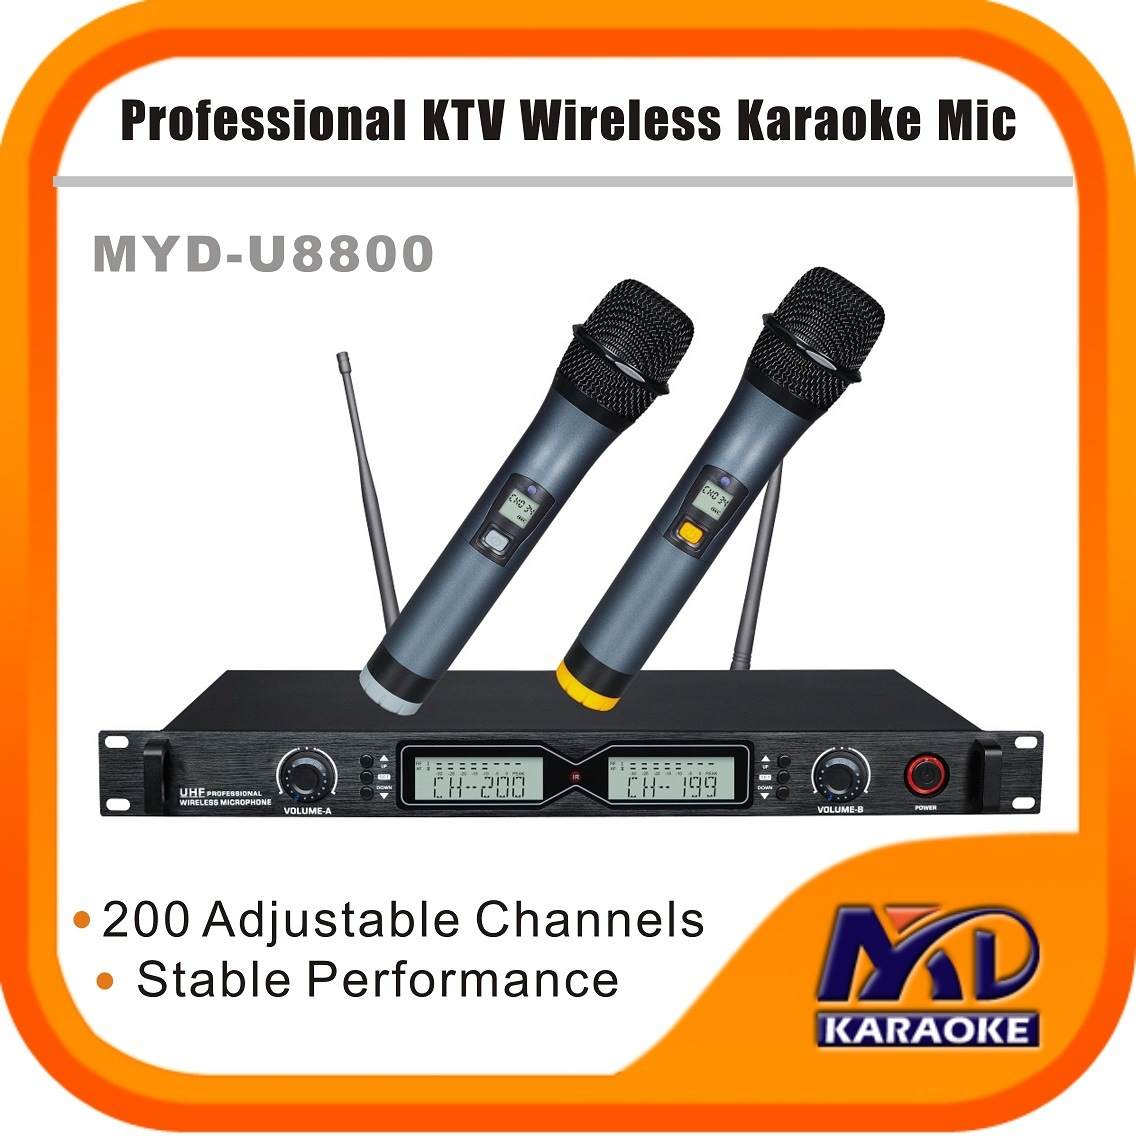 UHF Wireless Microphones 200 Channels